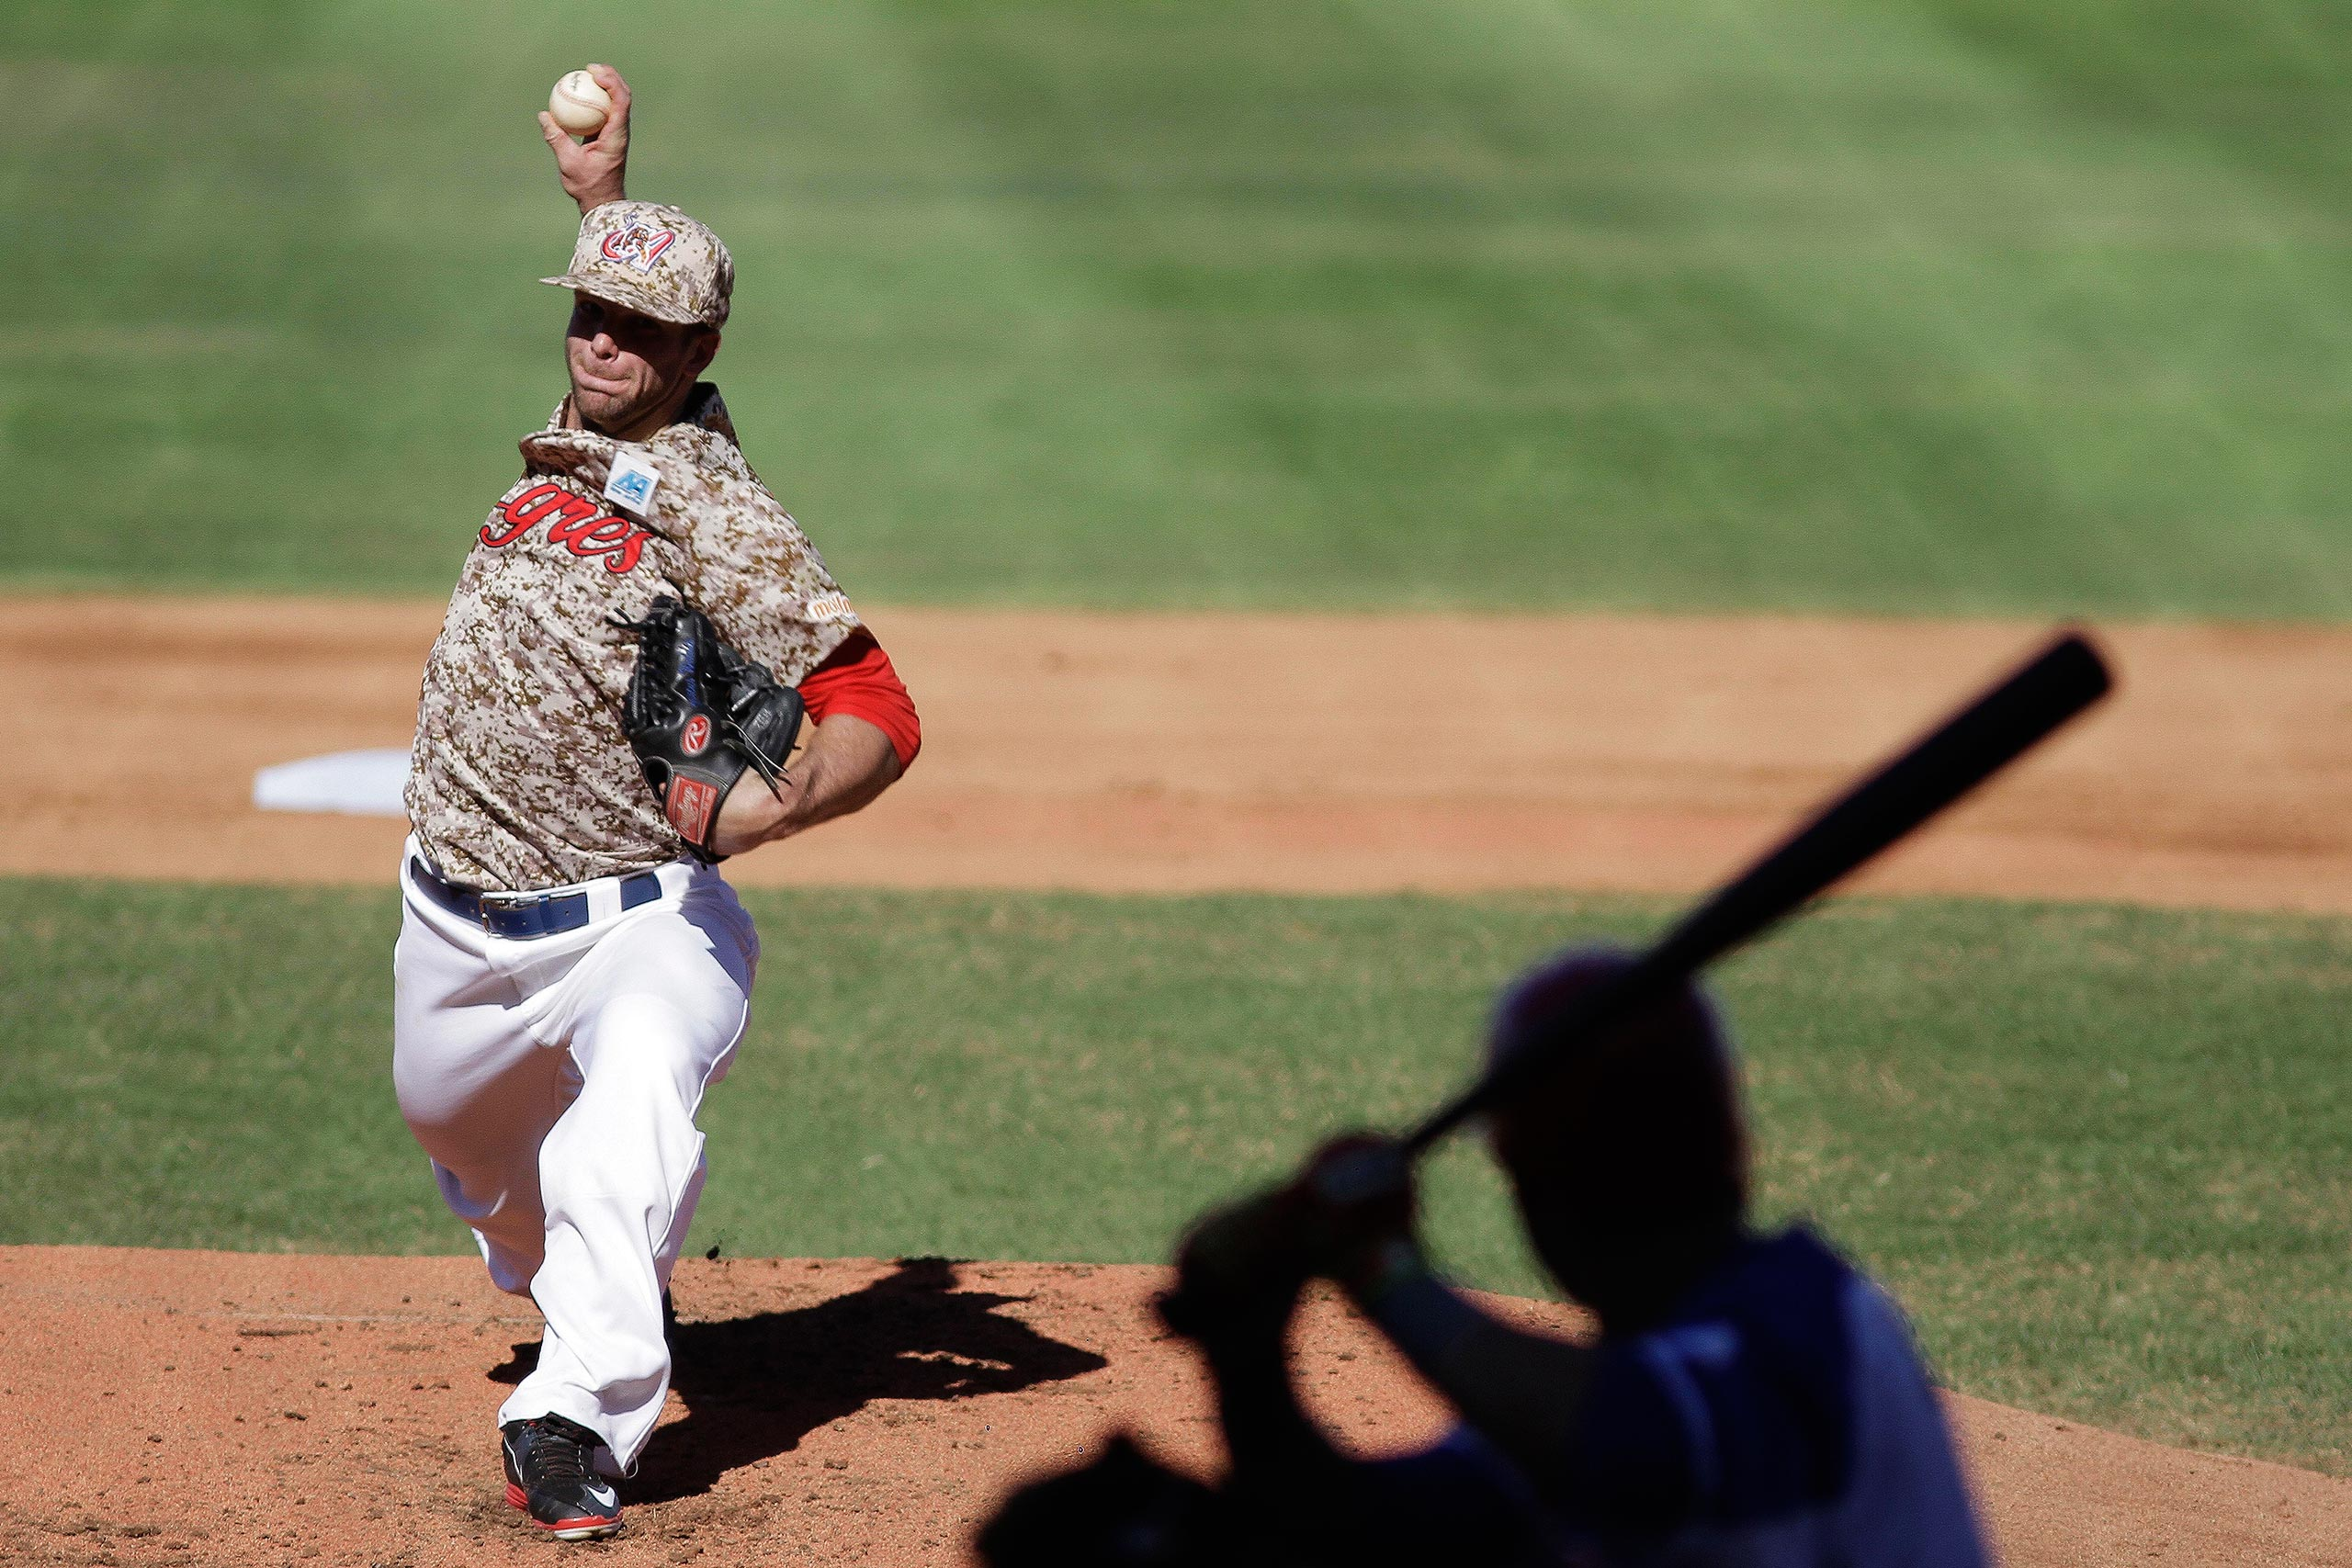 Walden Marcus, a pitcher on Venezuela's Tigres de Aragua, throws the ball during the first inning of the Caribbean Series baseball game against Puerto Rico's Cangrejeros de Santurce in Santo Domingo, Dominican Republic, Feb. 6, 2016.